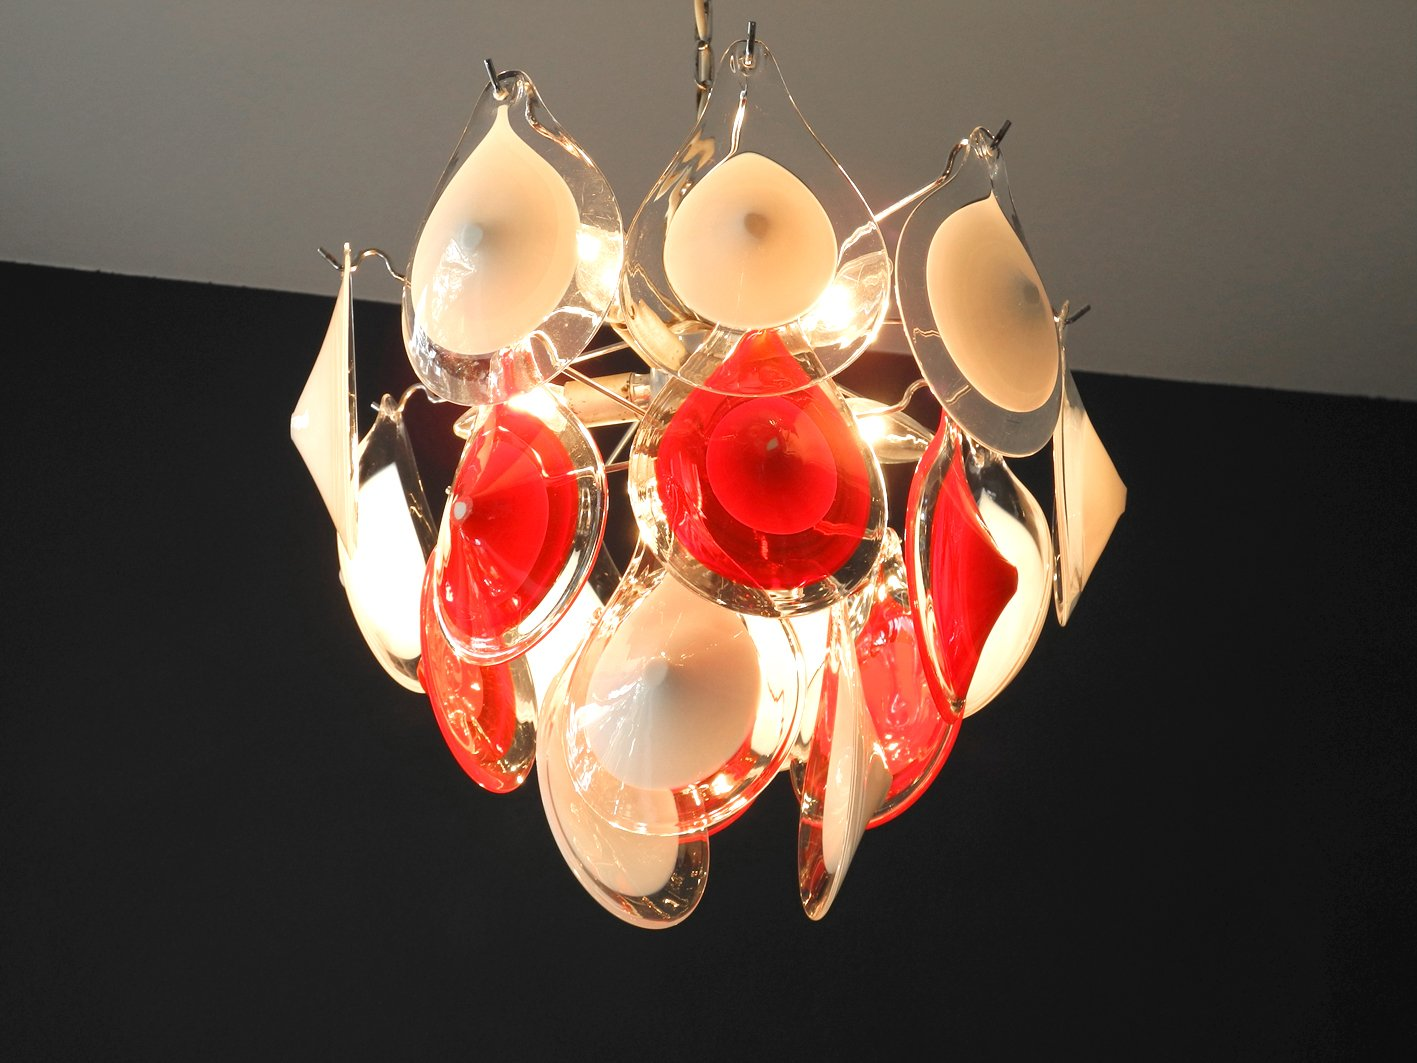 Vintage red and white murano glass chandelier by gino vistosi for a291800 aloadofball Images